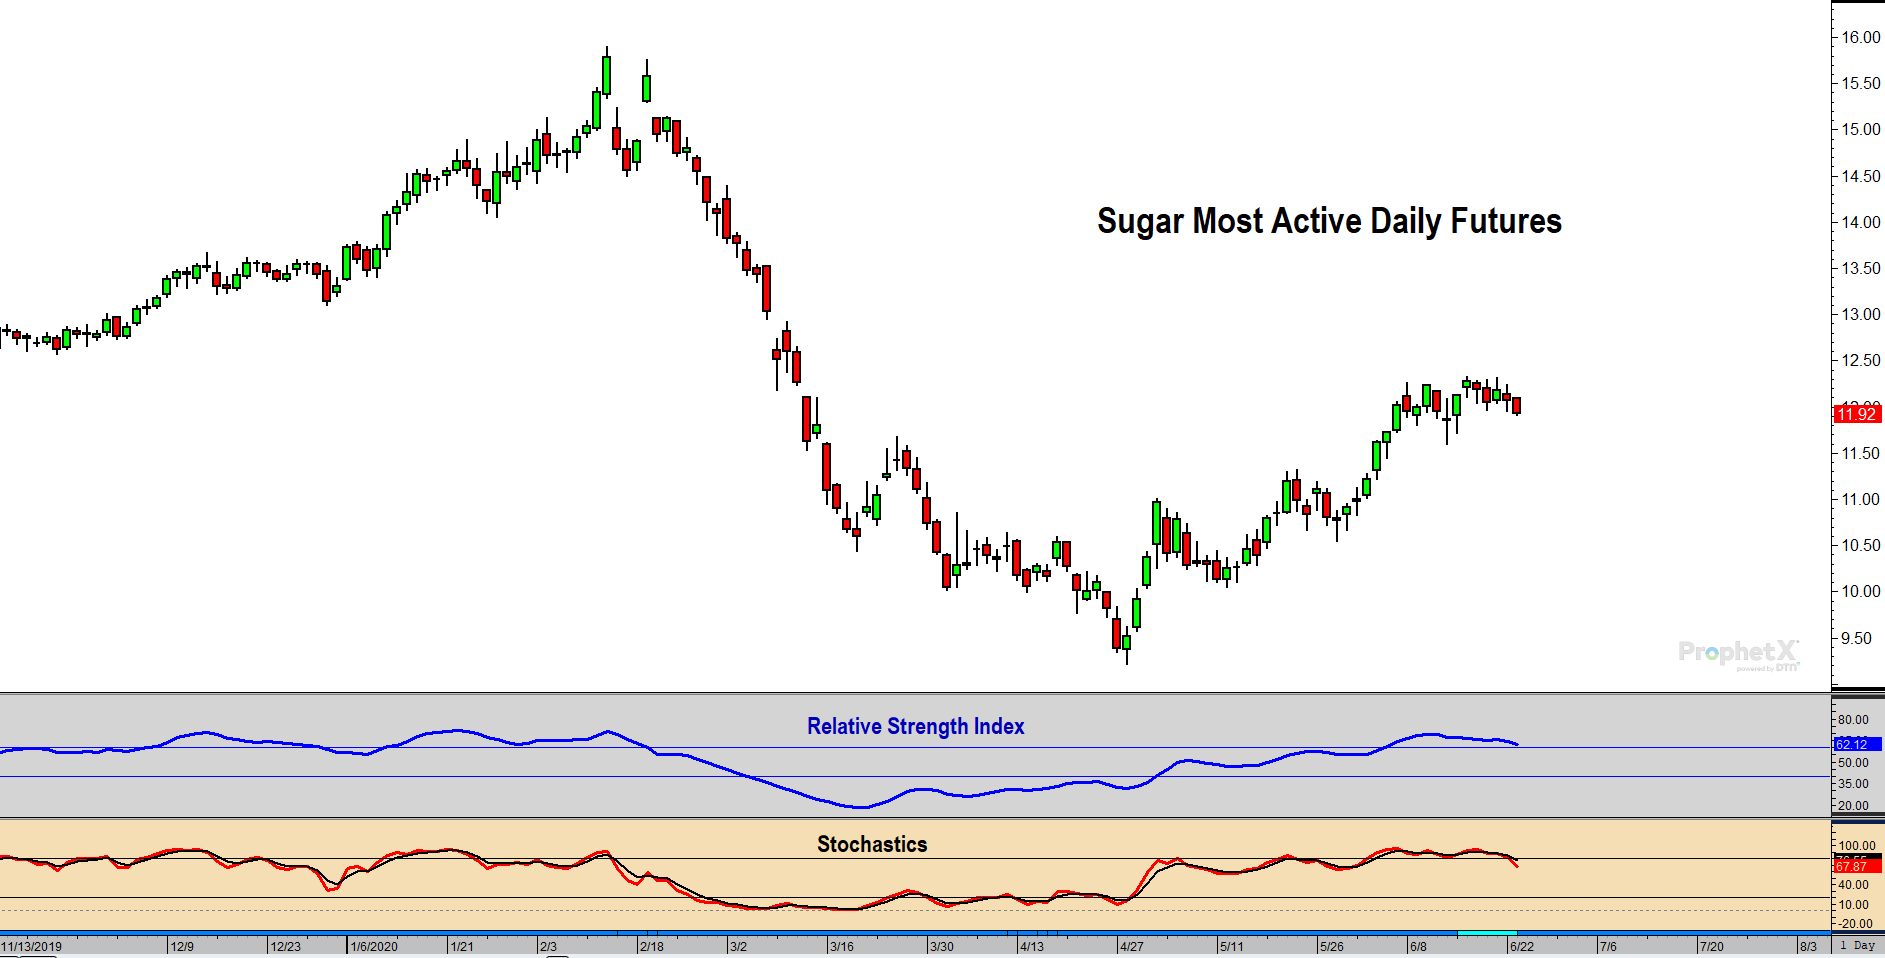 Sugar Futures Technical Analysis